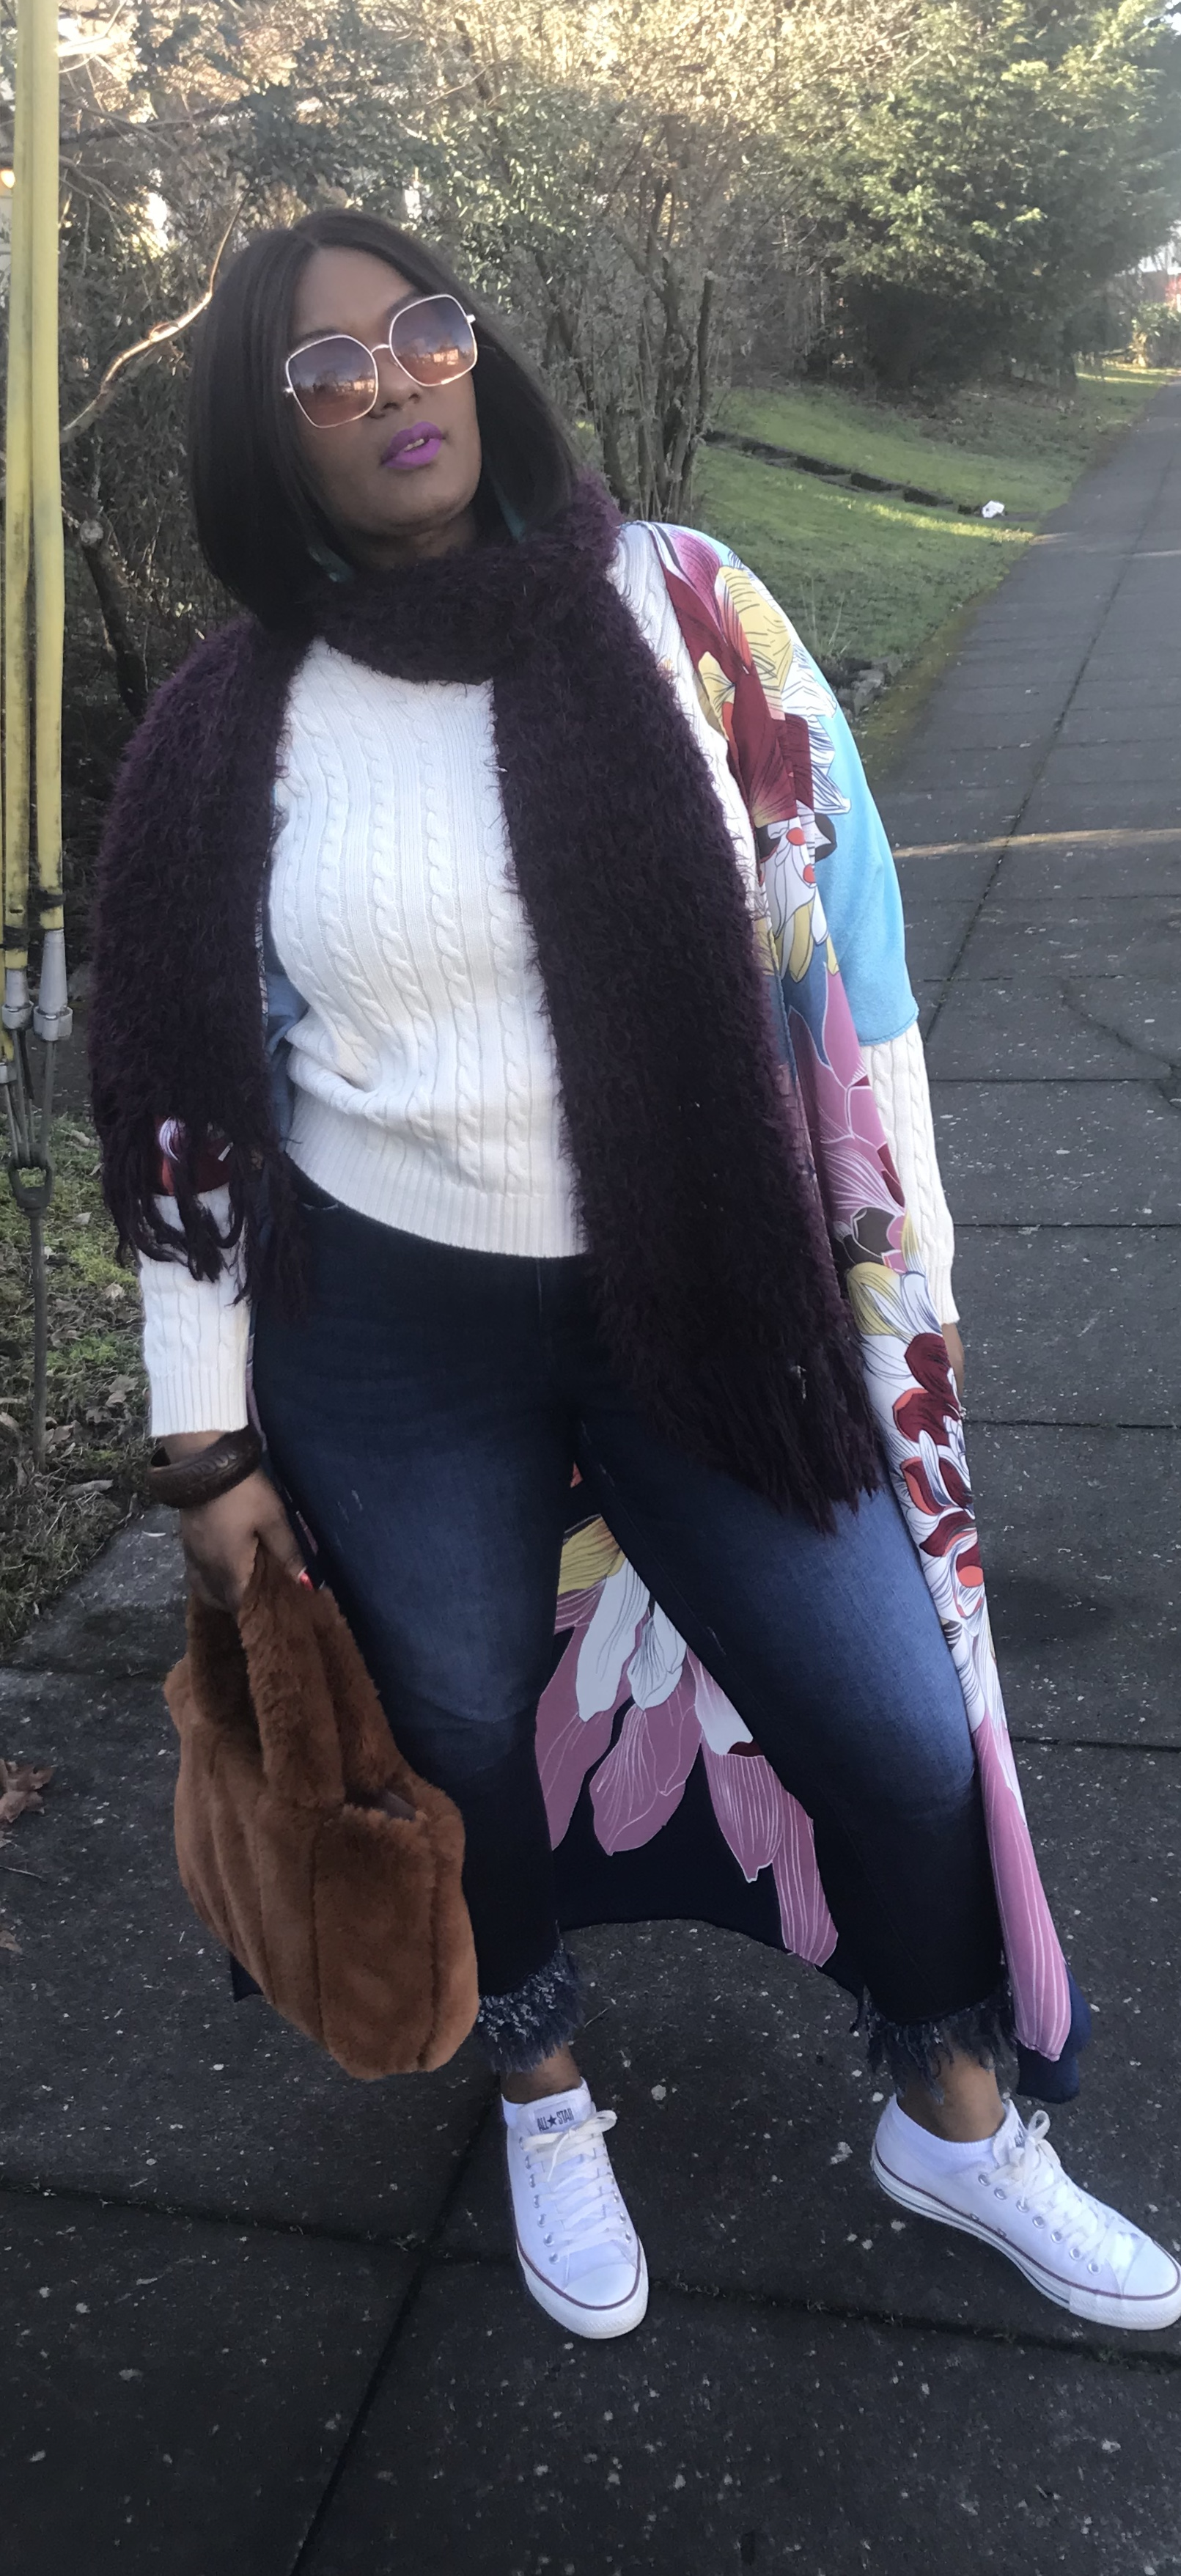 Extend your wardrobe - Add a medium weight sweater, warm scarf to a fun pair of jeans. Jeans with ankle interest are on trend. My go to for medium weight sweaters is Lauren by Ralph Lauren. This jeans are from Lane Bryantyou can find them here